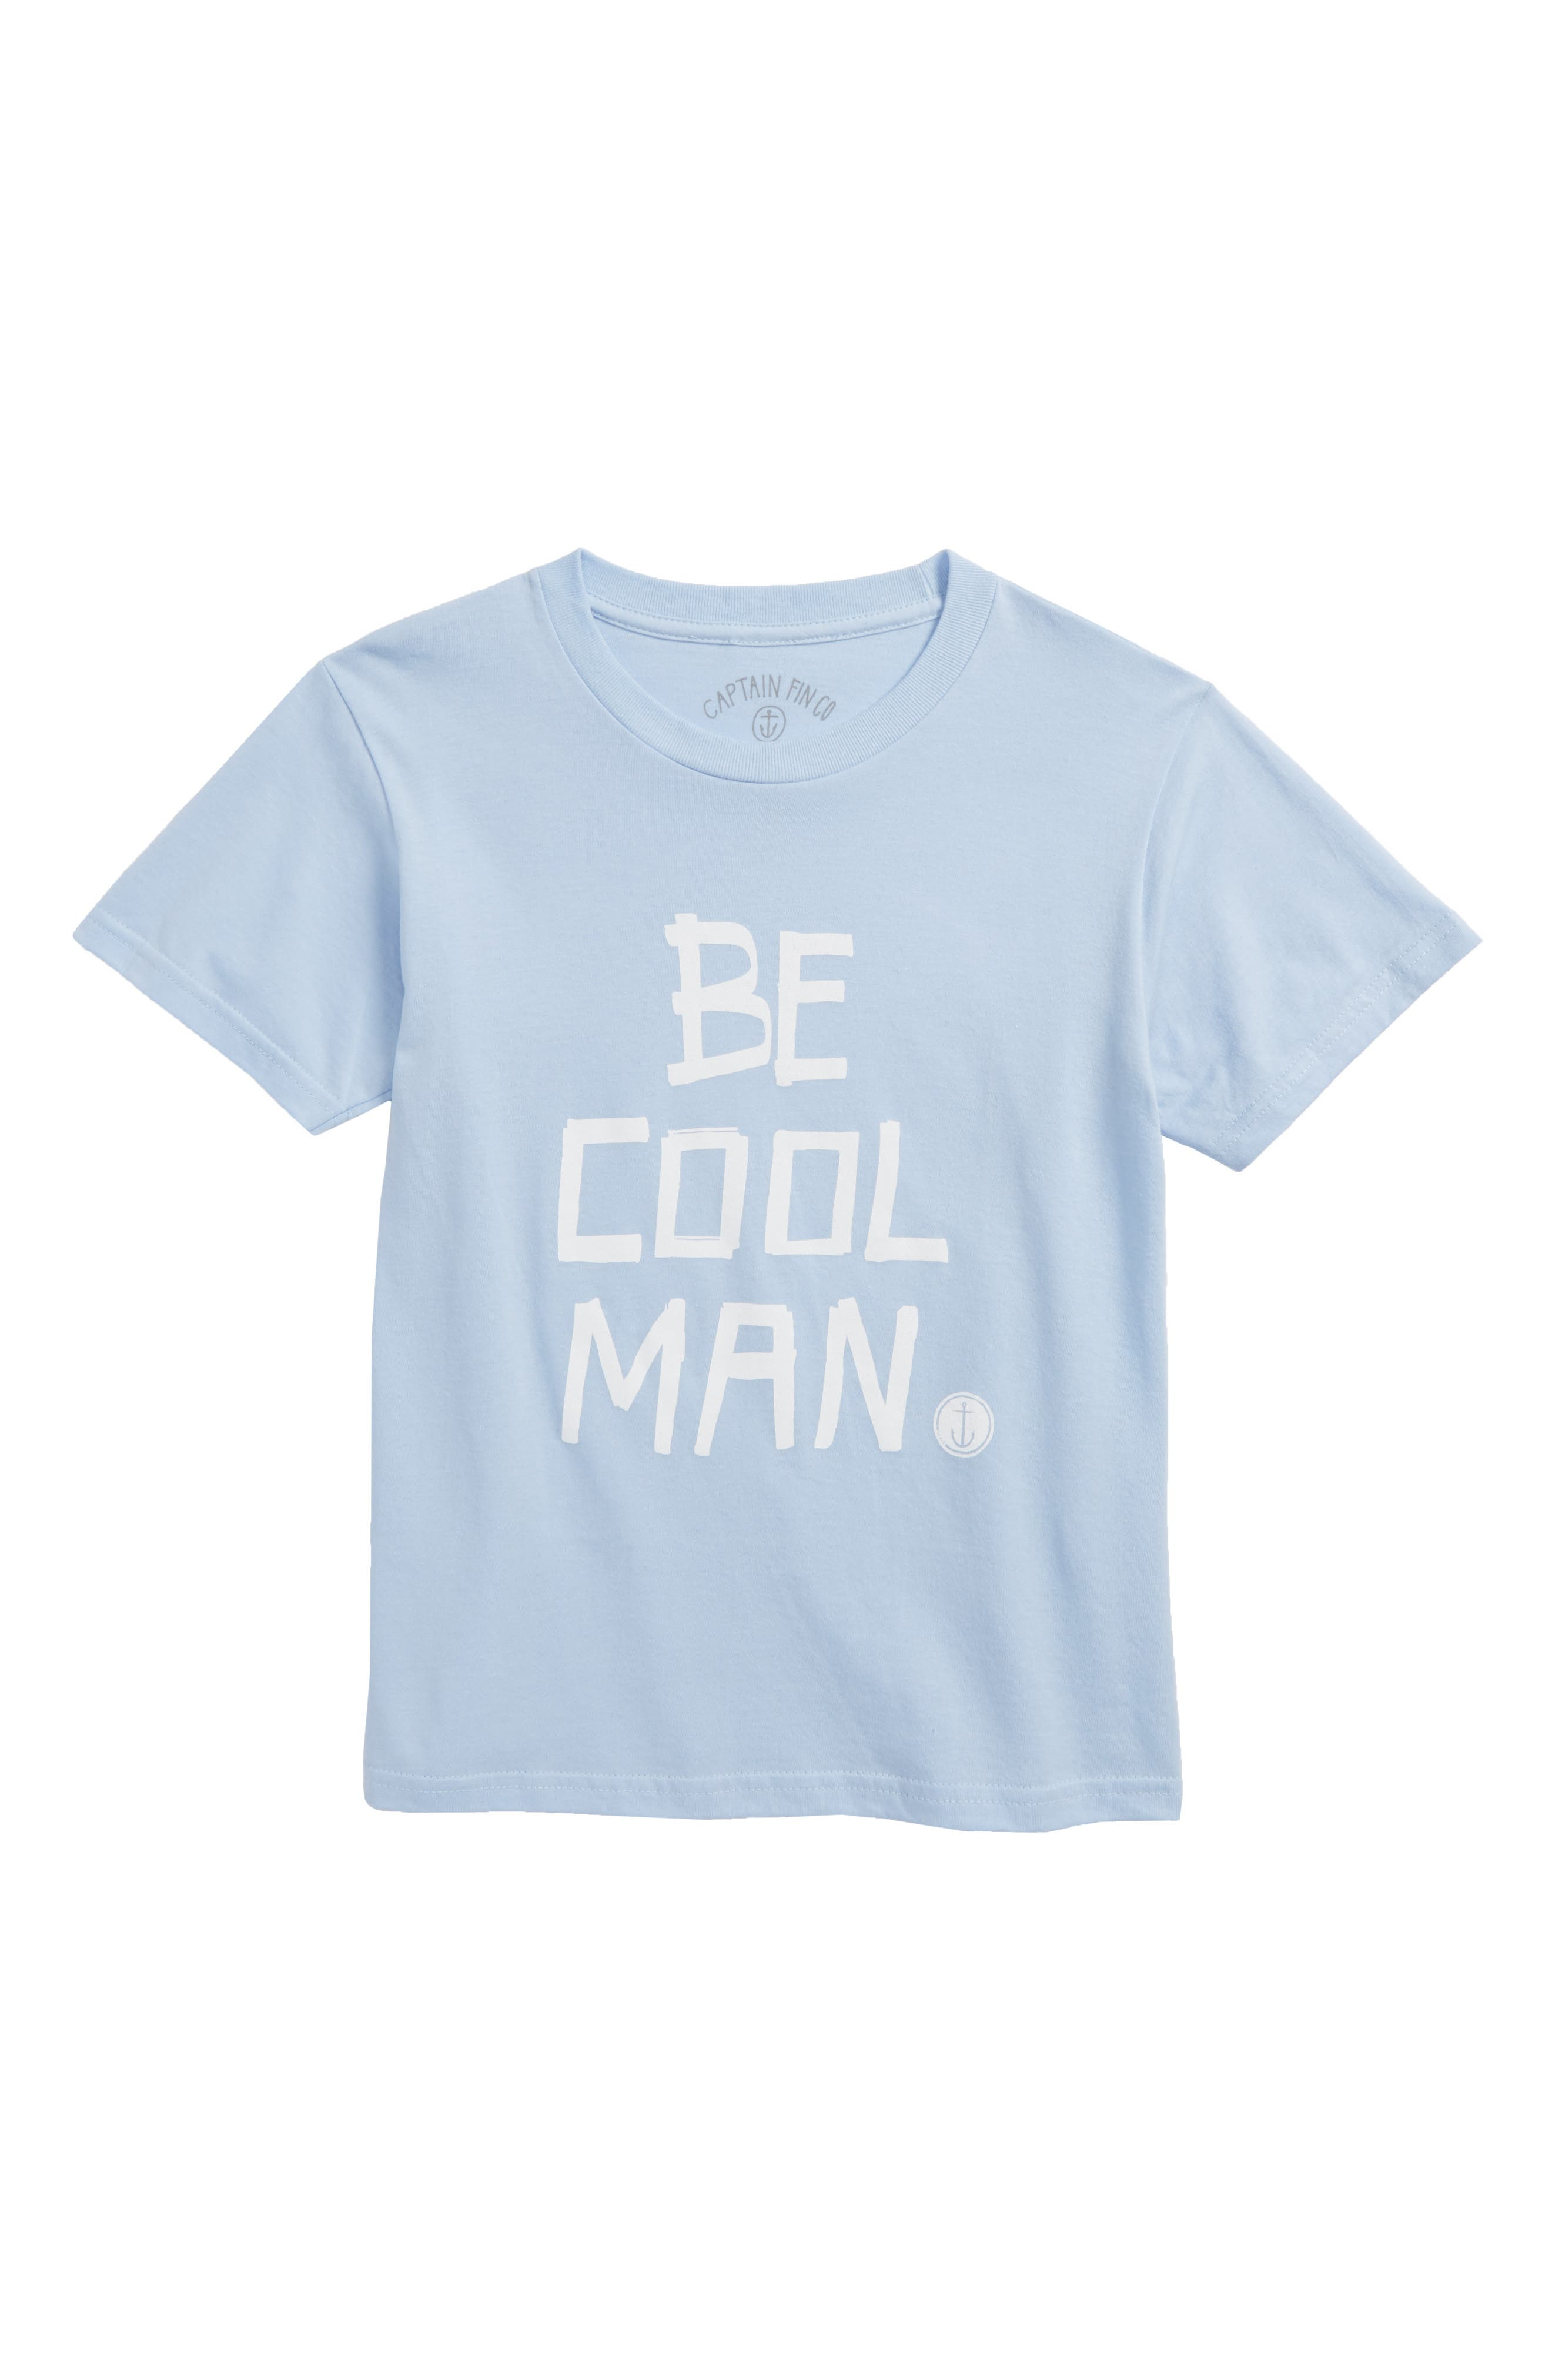 Captin Fin Be Cool Man Graphic T-Shirt,                             Main thumbnail 1, color,                             Sky Blue